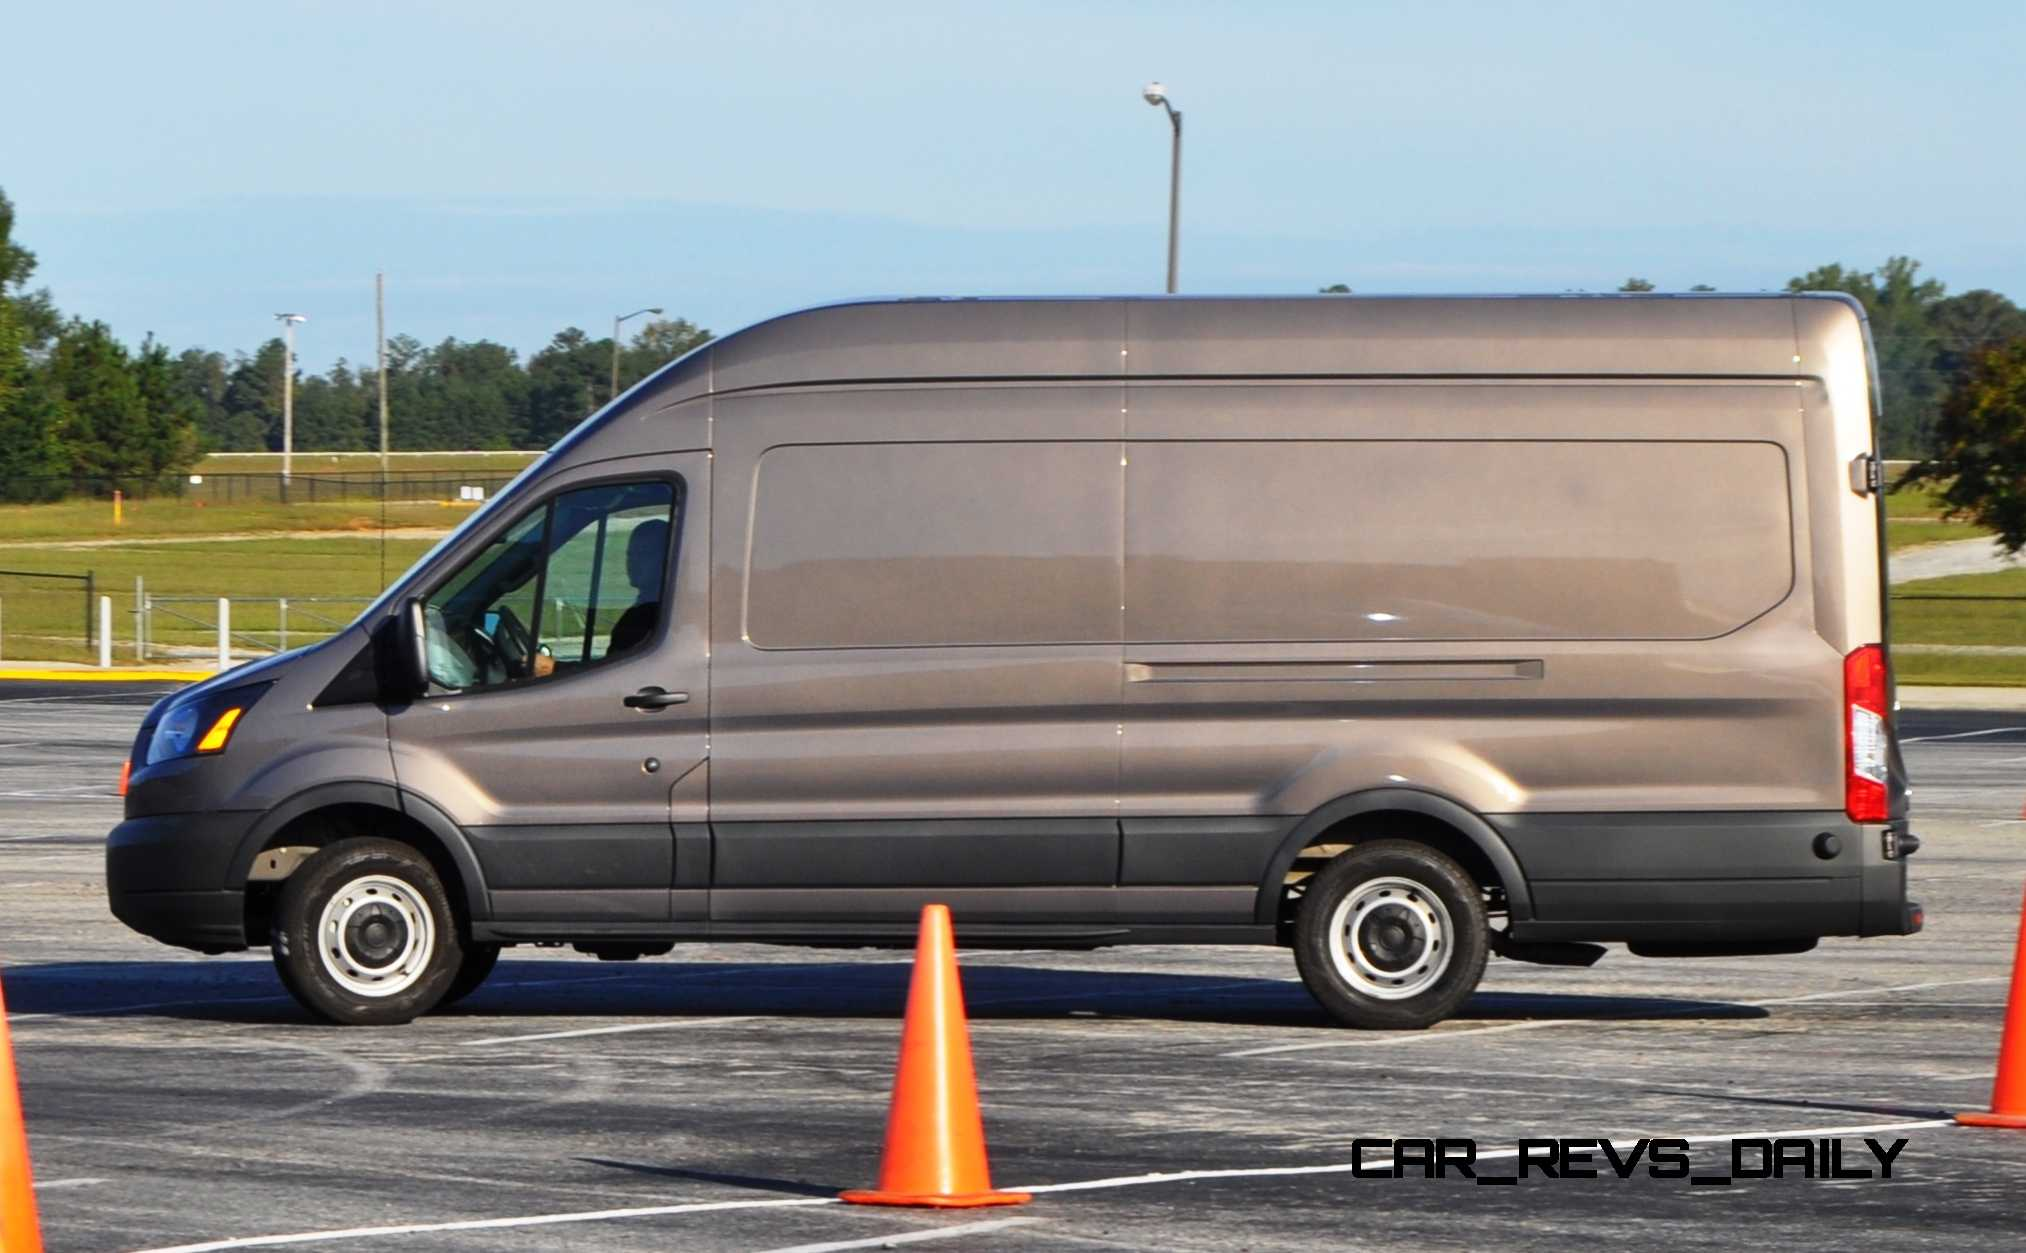 hd track drive review 2015 ford transit powerstroke diesel high roof long box cargo van 12. Black Bedroom Furniture Sets. Home Design Ideas